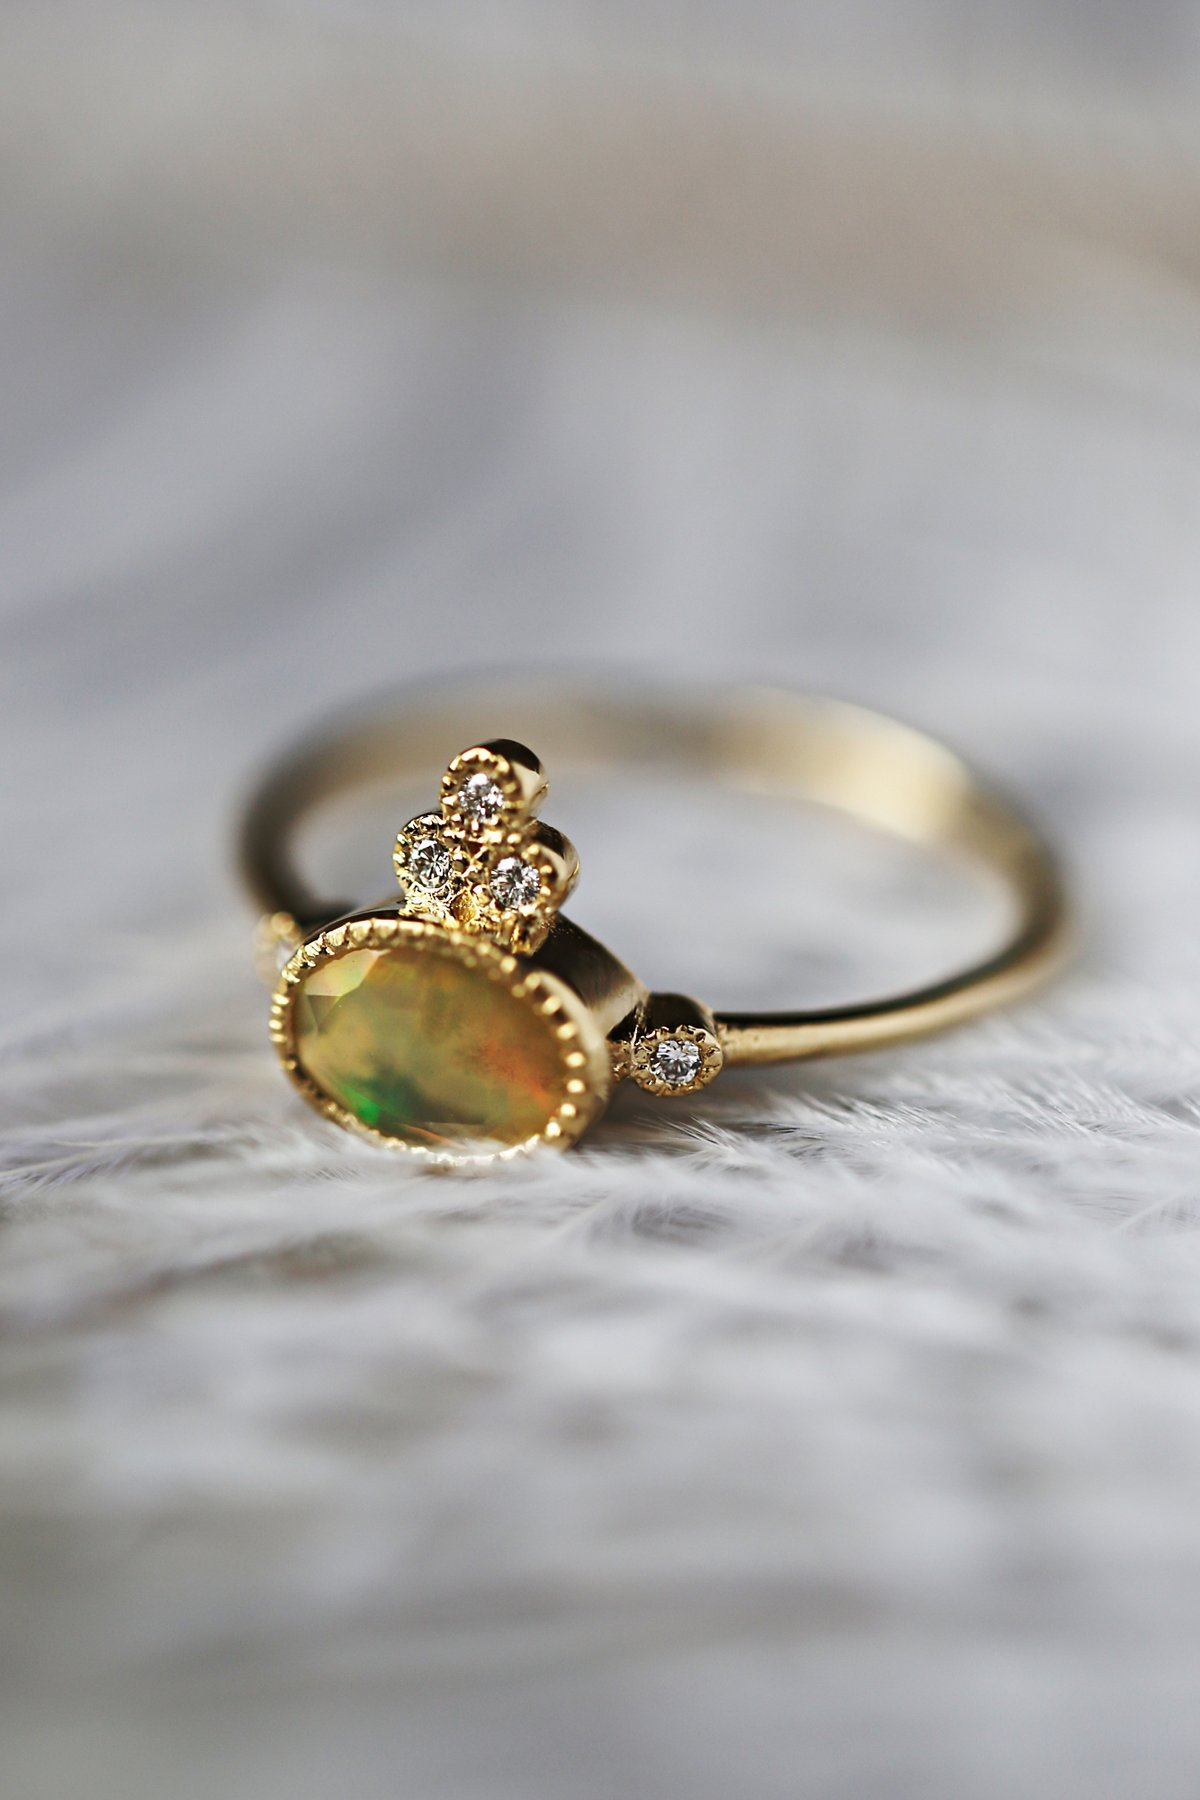 14k gold 5 opal ring at free clothing boutique